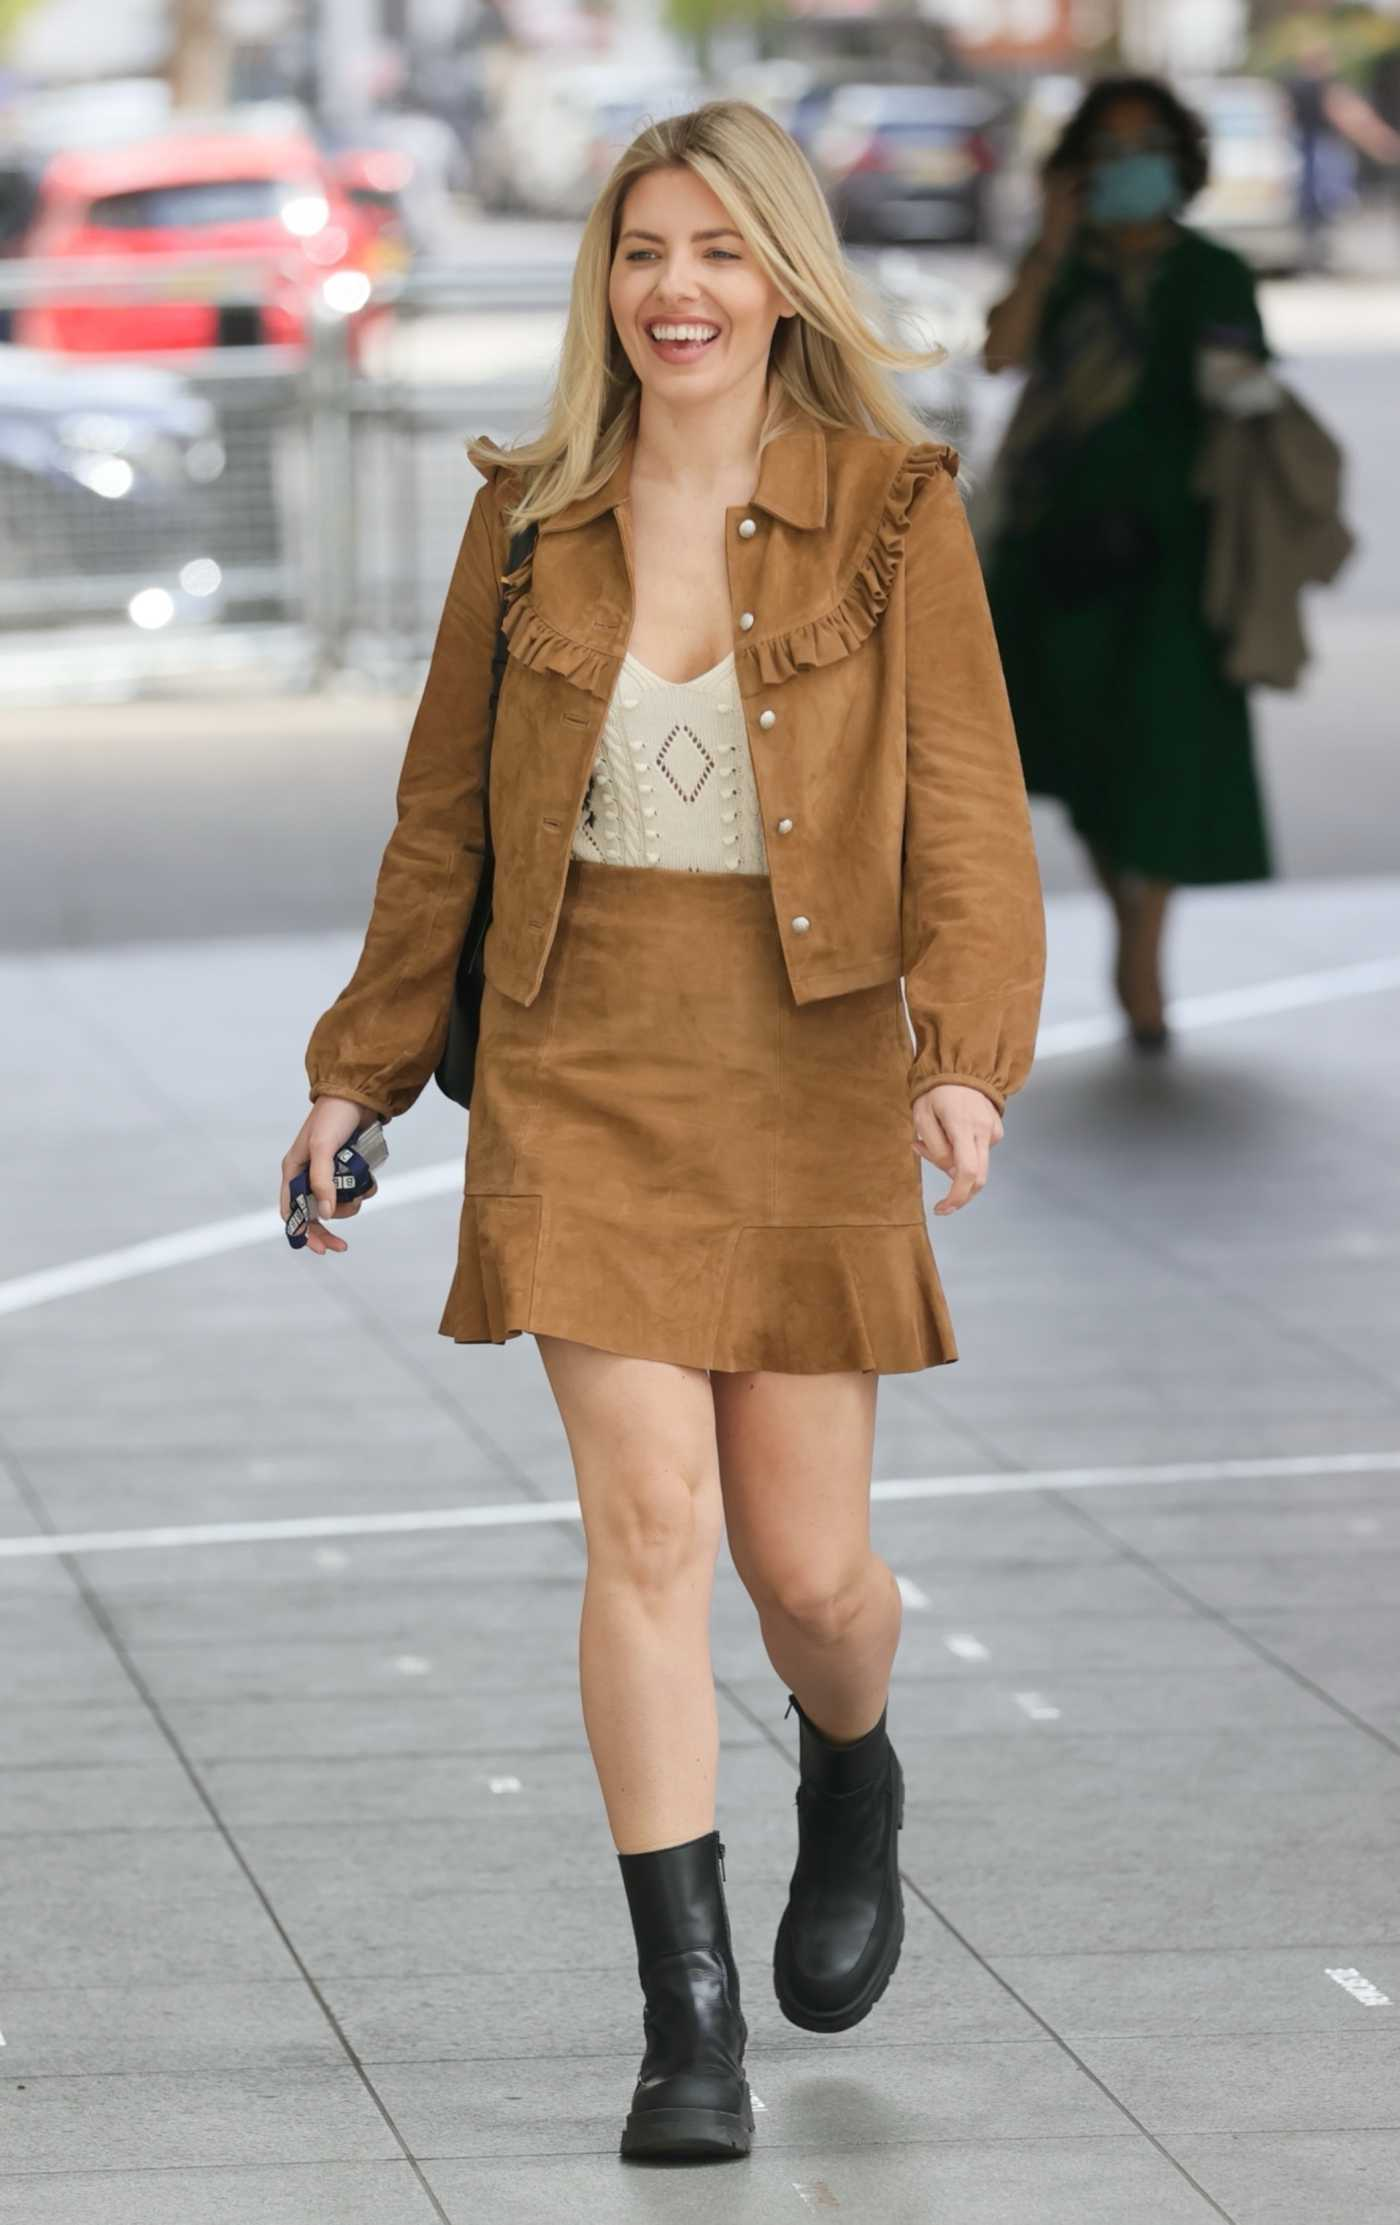 Mollie King in a Tan Suede Suit Arrives at BBC Radio 1 in London 05/09/2021